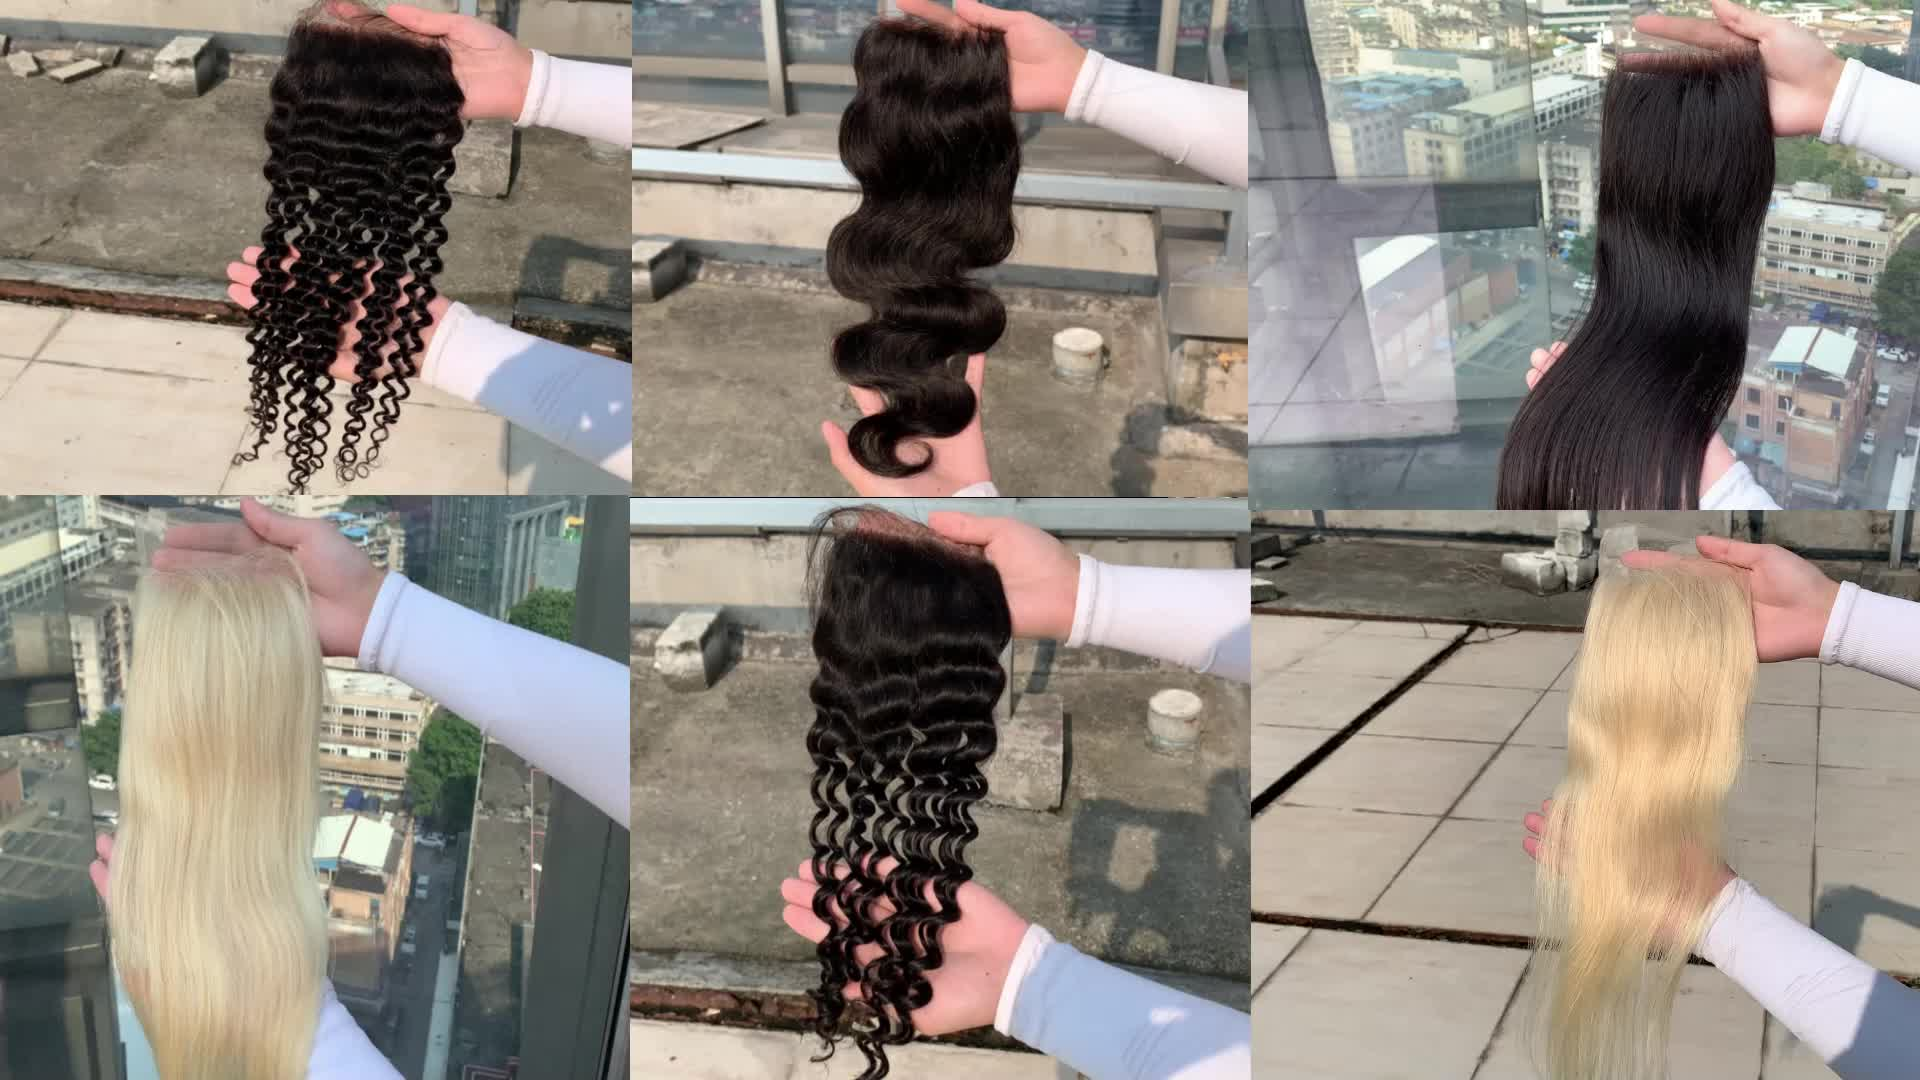 XBL 50% off wholesale raw indian temple hair in india,hot selling raw virgin cuticle aligned hair from india,100 remy human hair